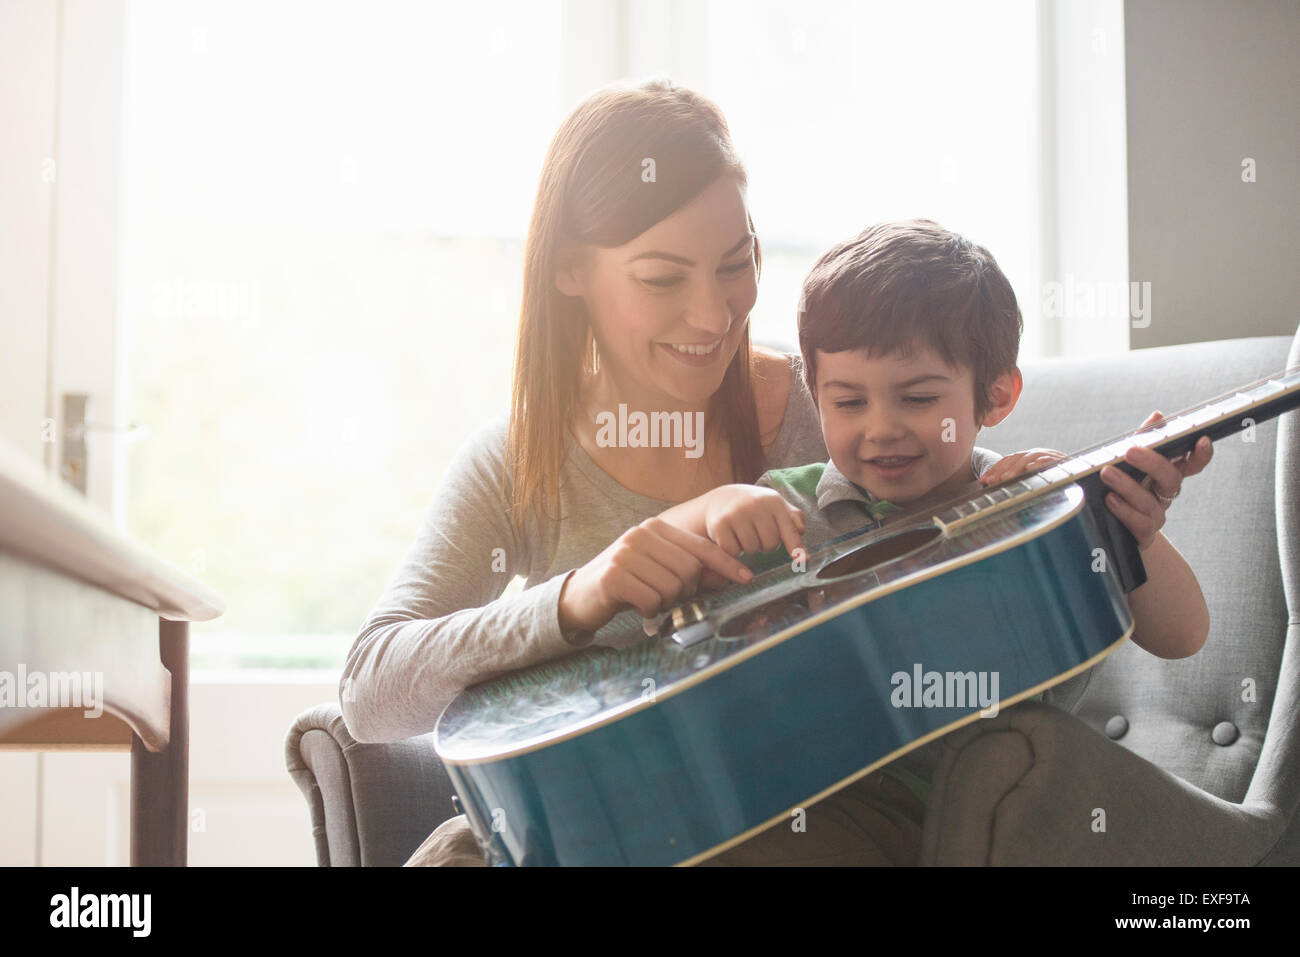 Boy sitting on mother's lap in sunlit room and learning to play guitar - Stock Image